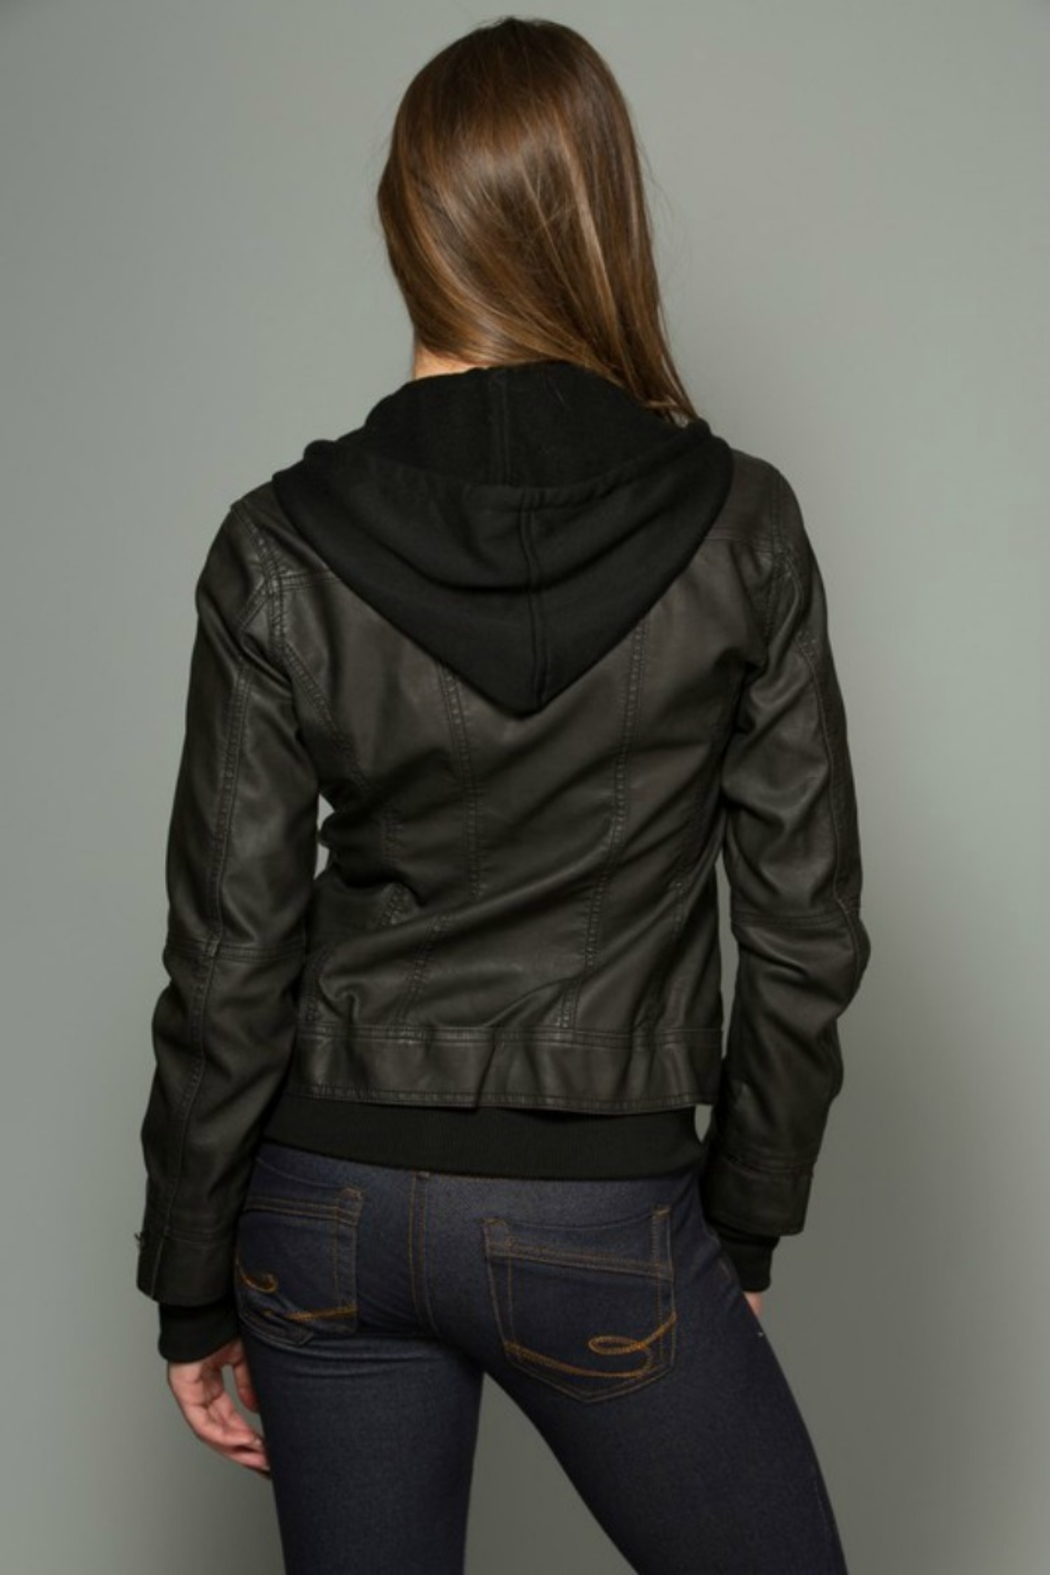 Coalition CHI TOWN JACKET - Side Cropped Image